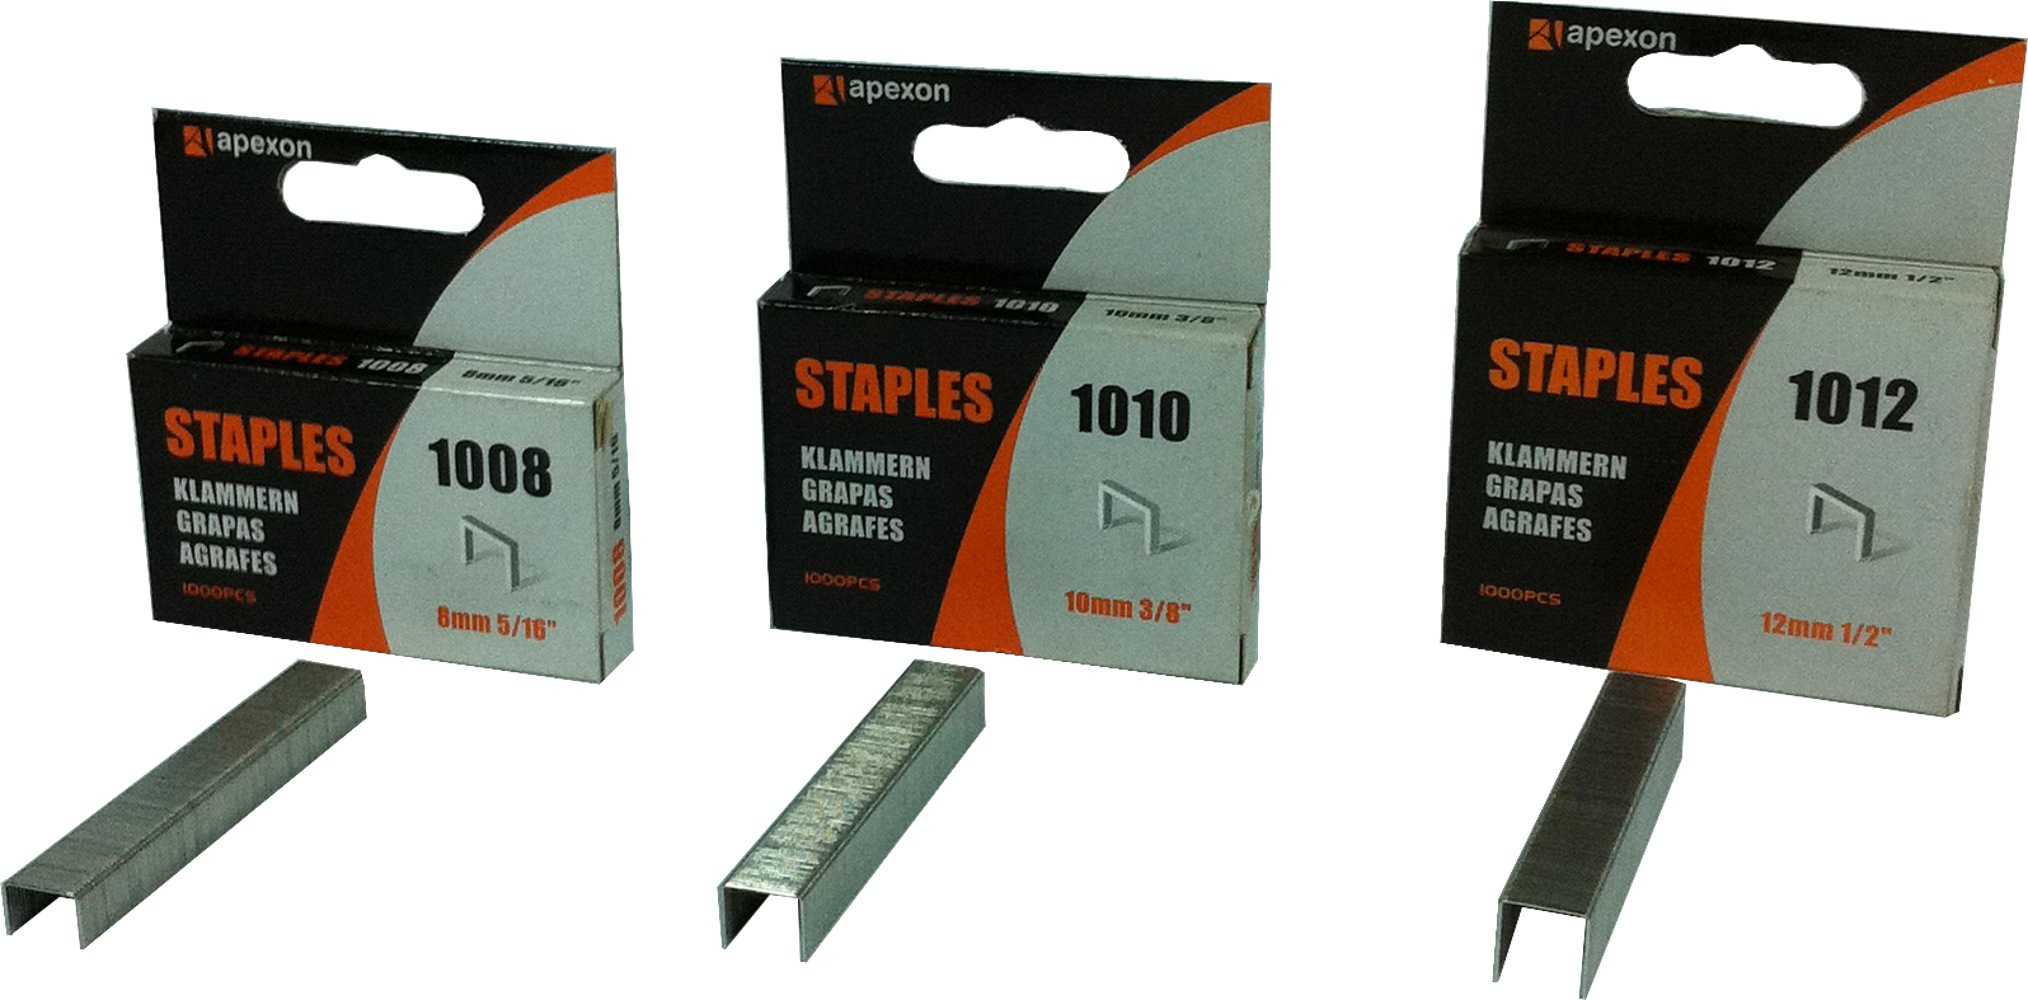 004-15 APEXON STAPLES 1000 PCS /BOX